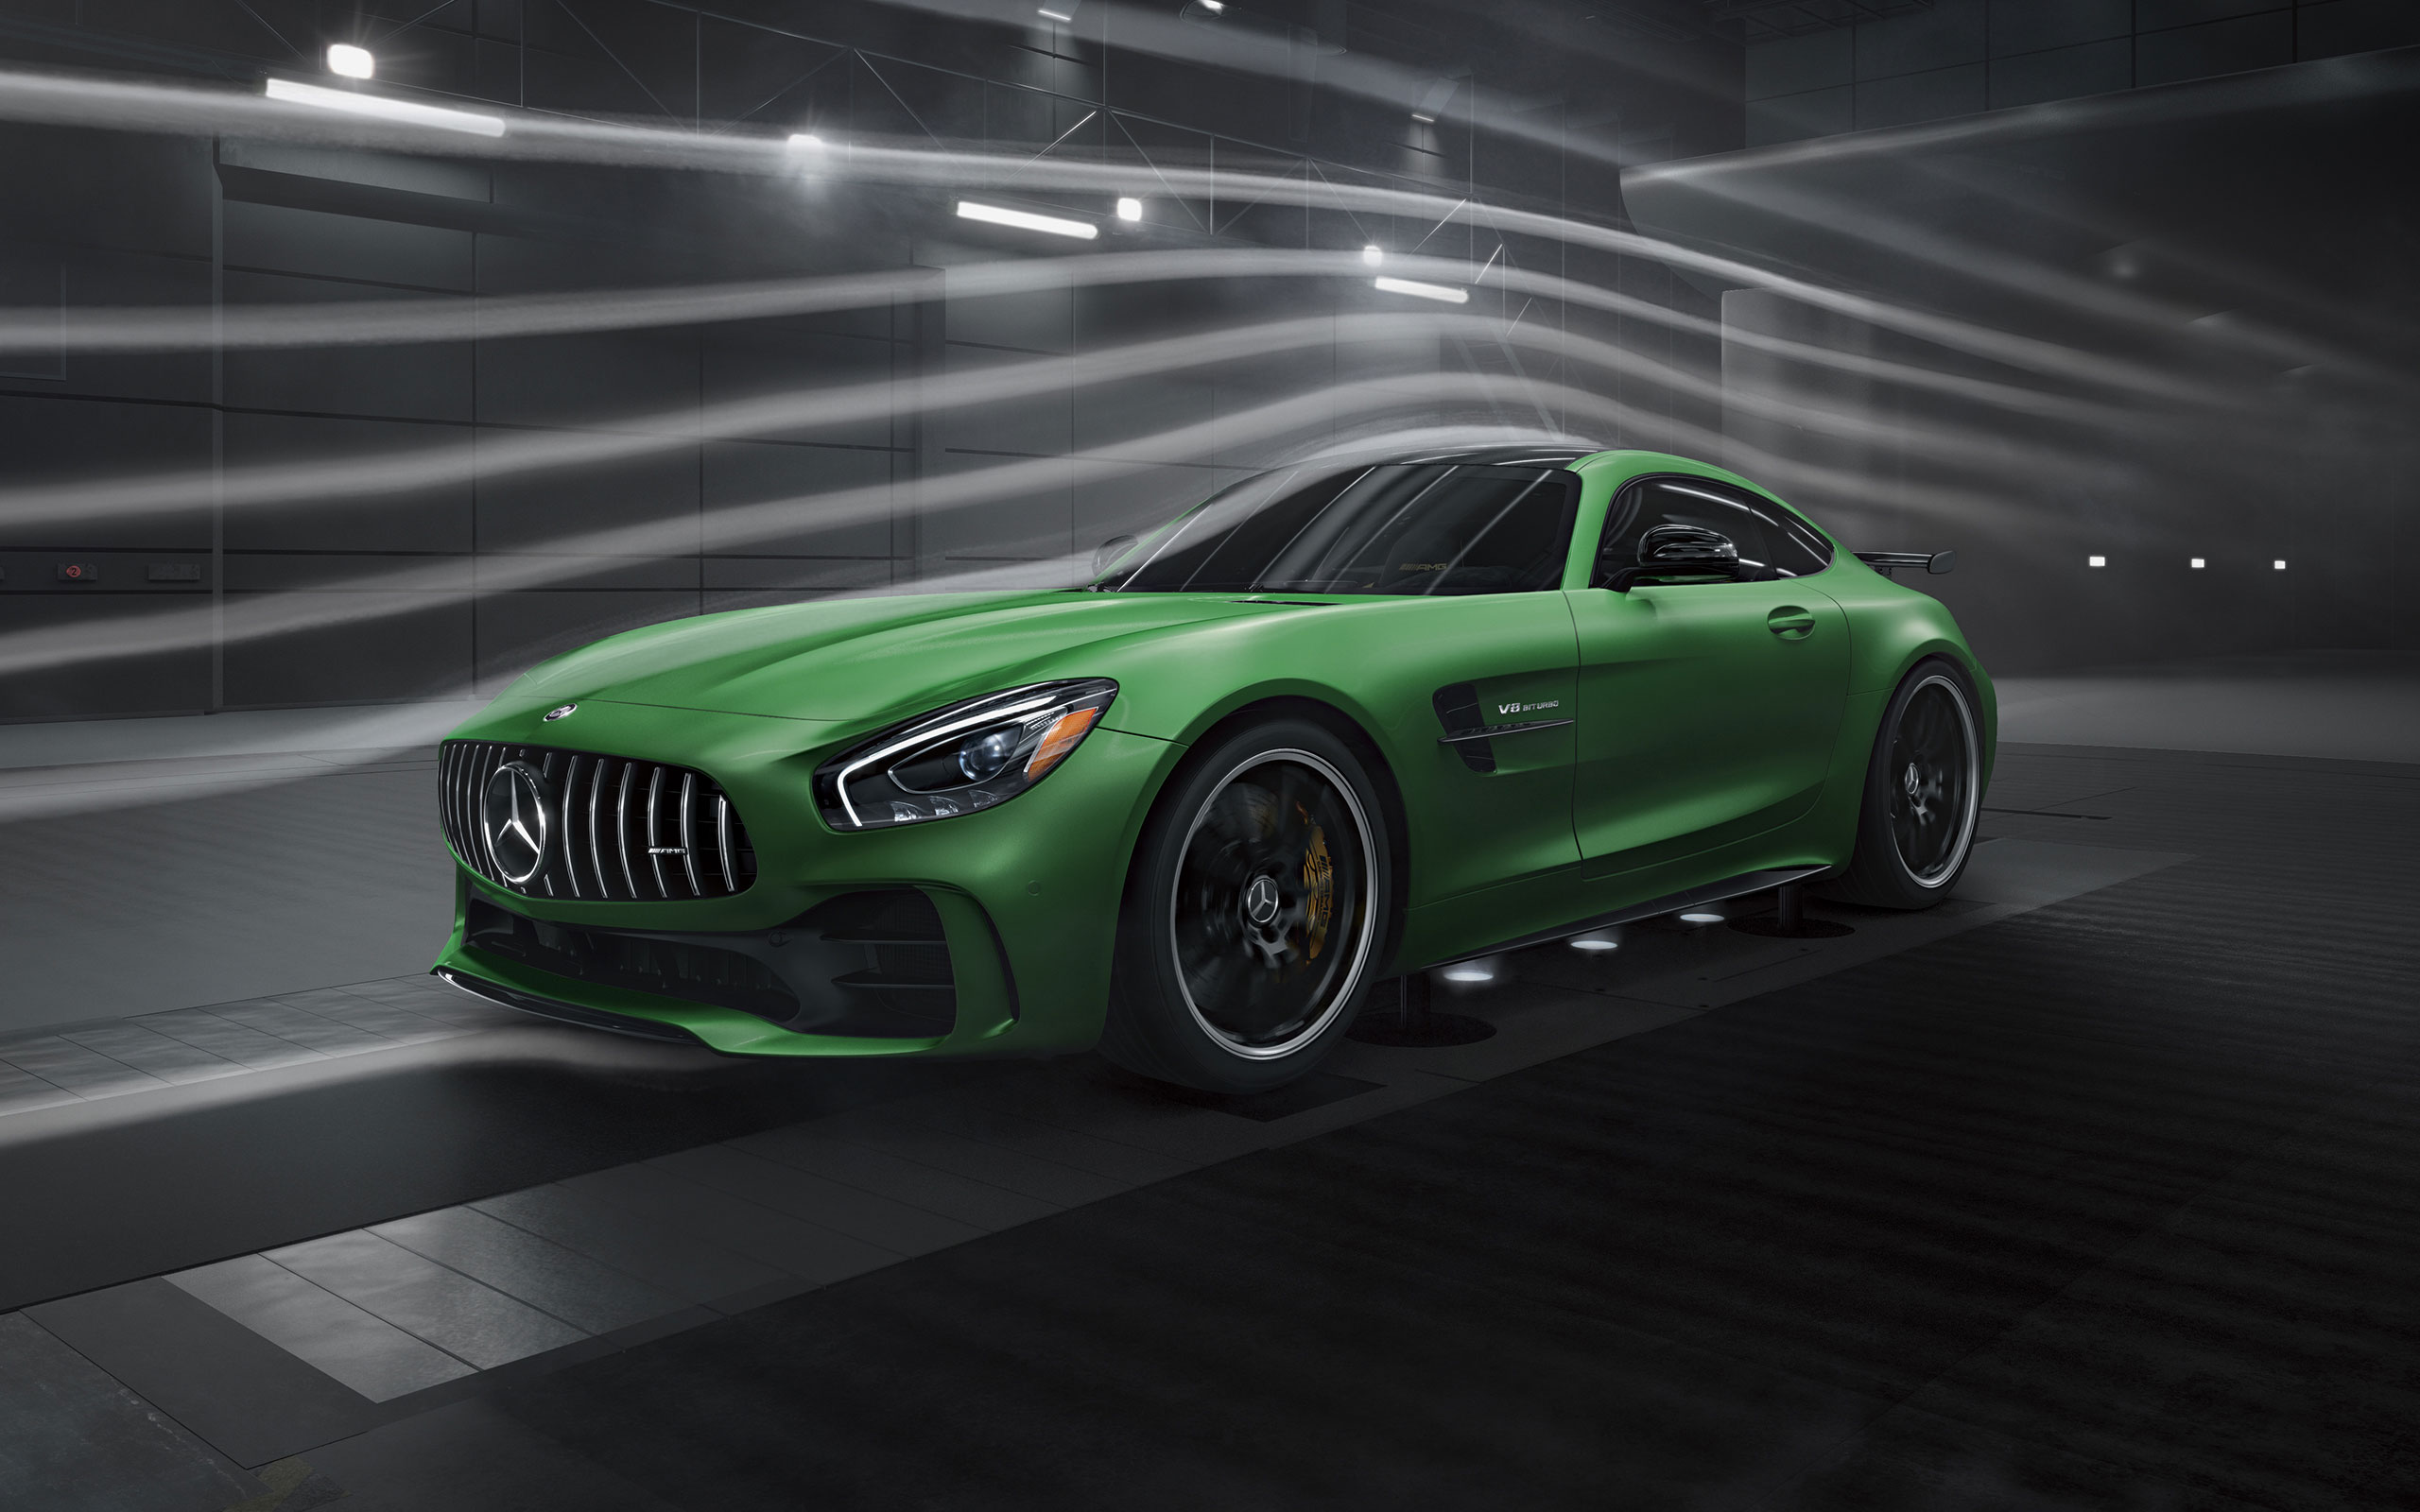 Mercedes-AMG GT High-performance Sports Car | Mercedes-Benz